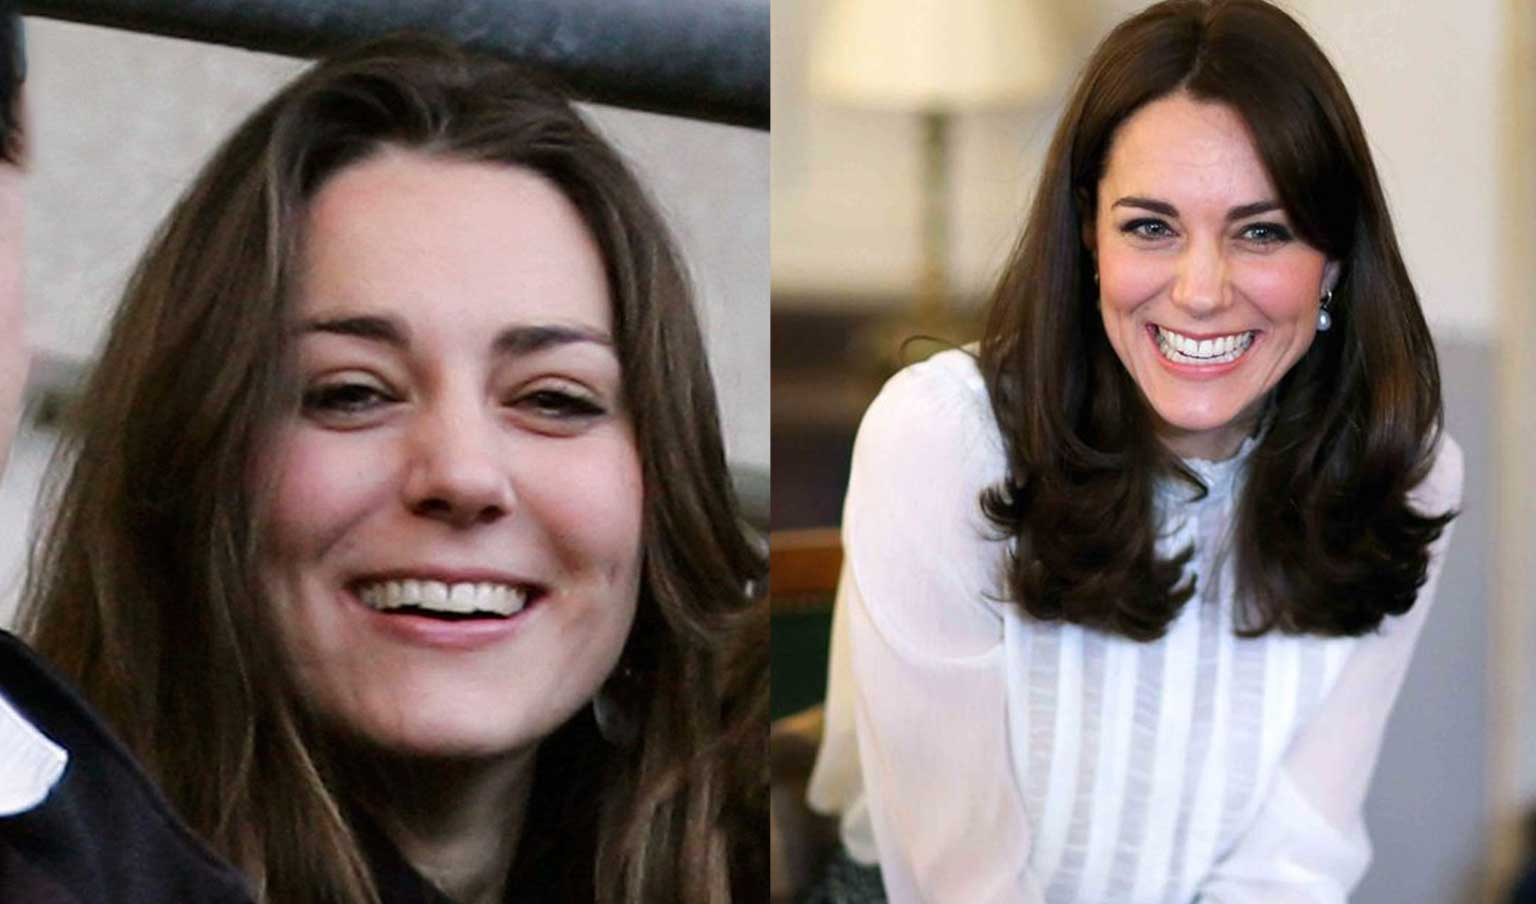 Kate Middleton before and after wearing lingual braces